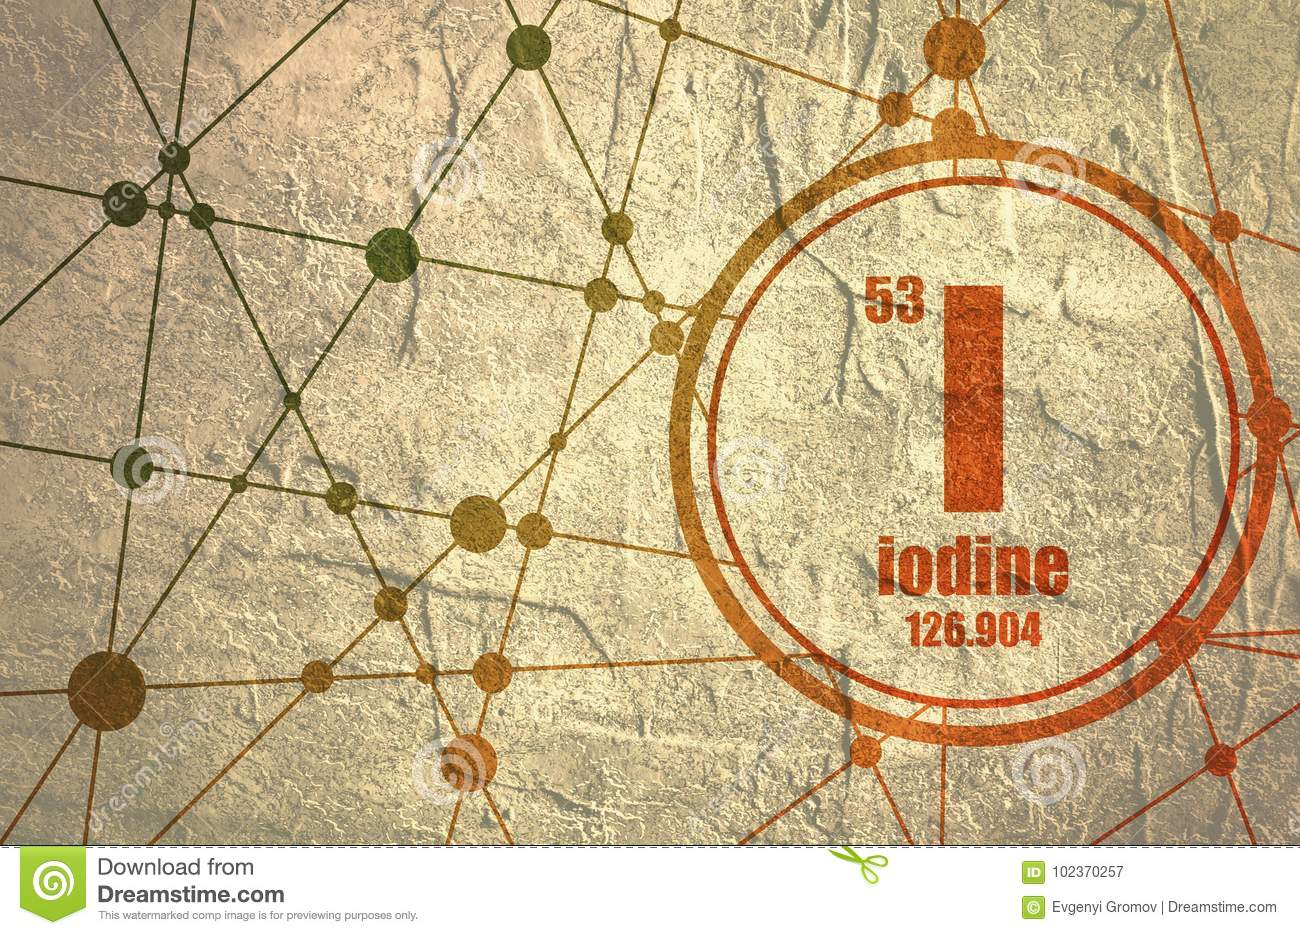 Iodine chemical element stock illustration illustration of quantum download iodine chemical element stock illustration illustration of quantum 102370257 urtaz Images